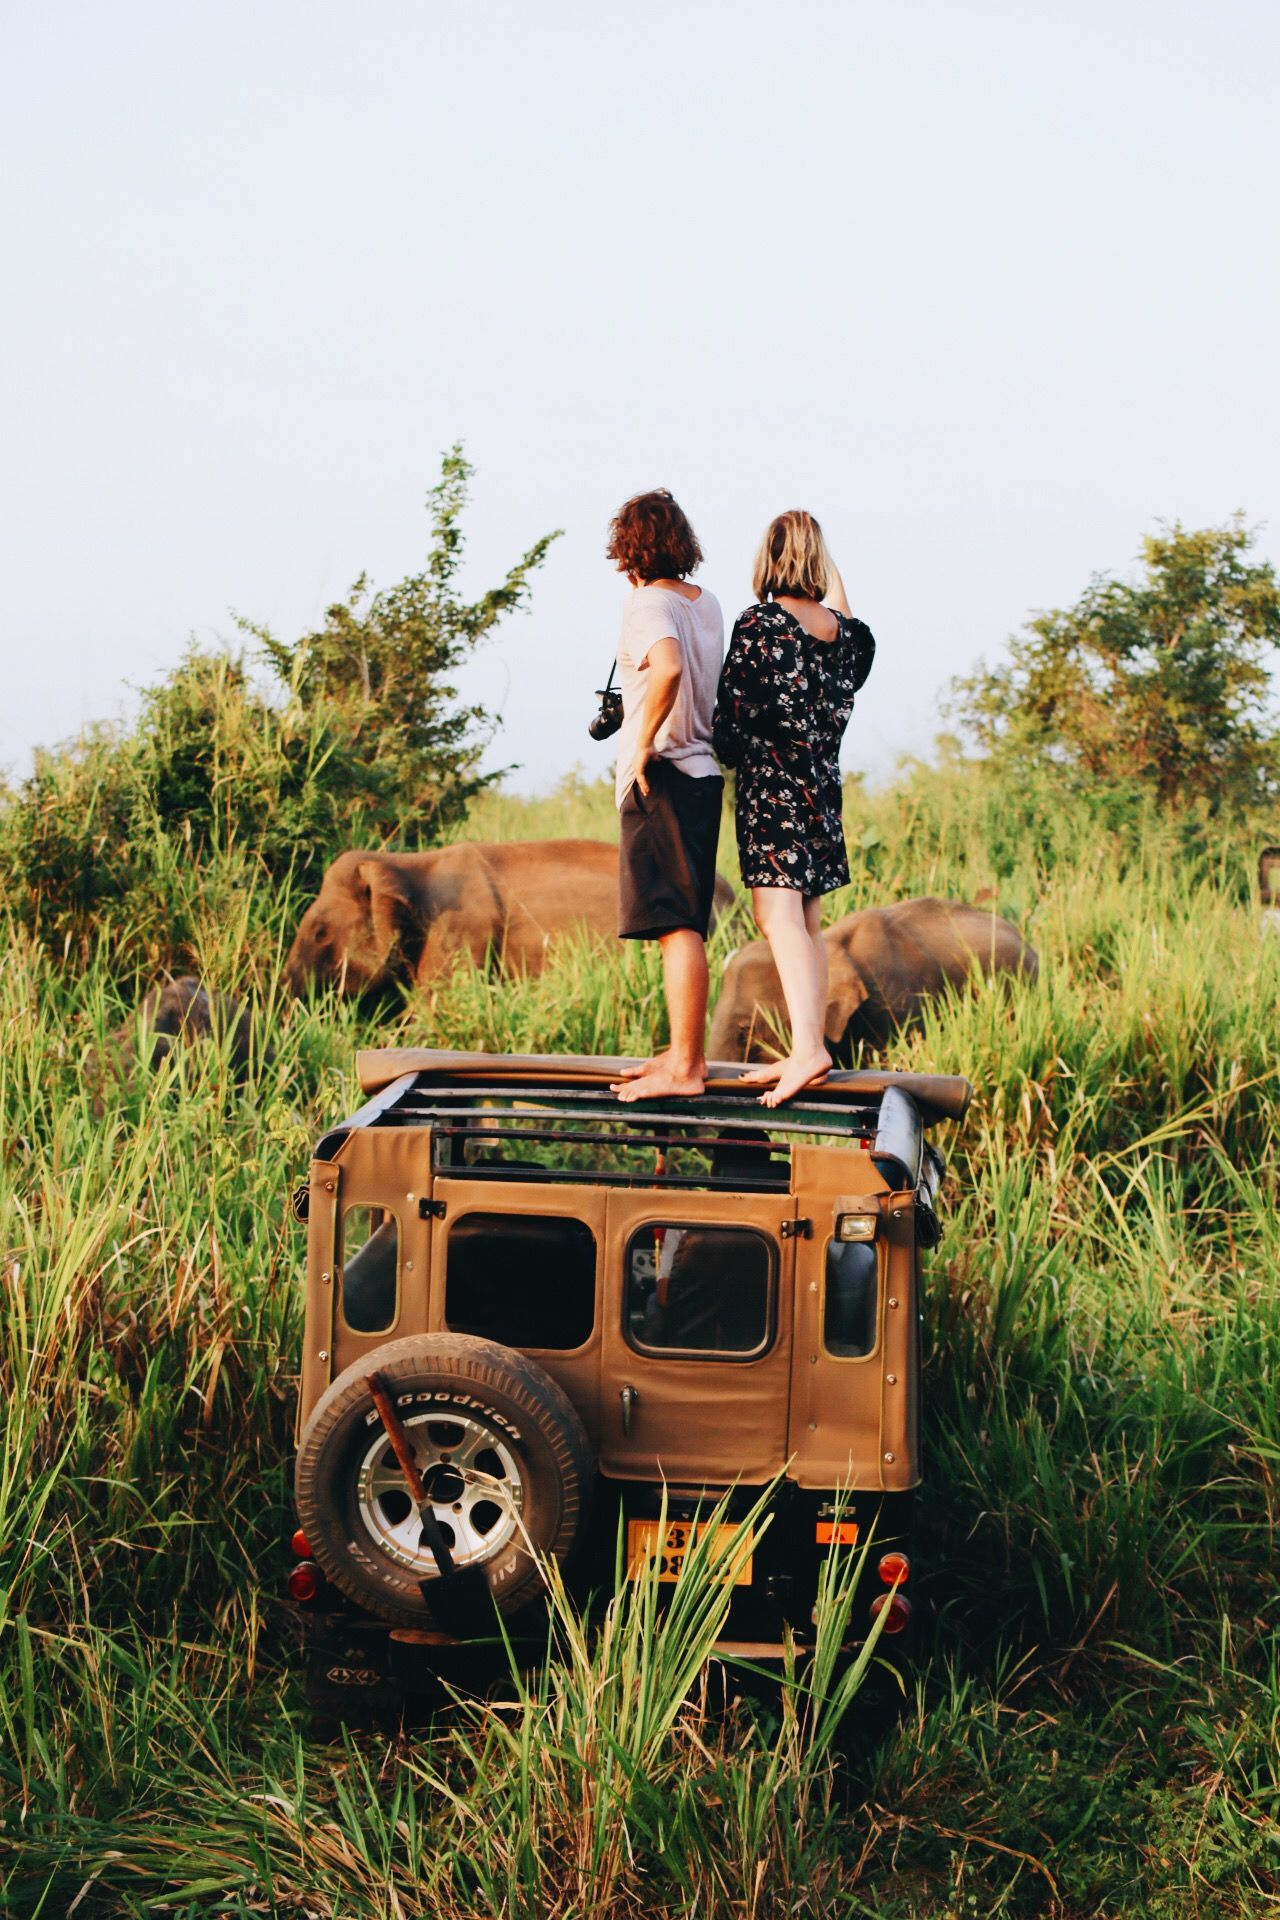 11 Of The Best Destinations To Travel To For Amazing Photographs - Hand Luggage Only - Travel, Food & Photography Blog